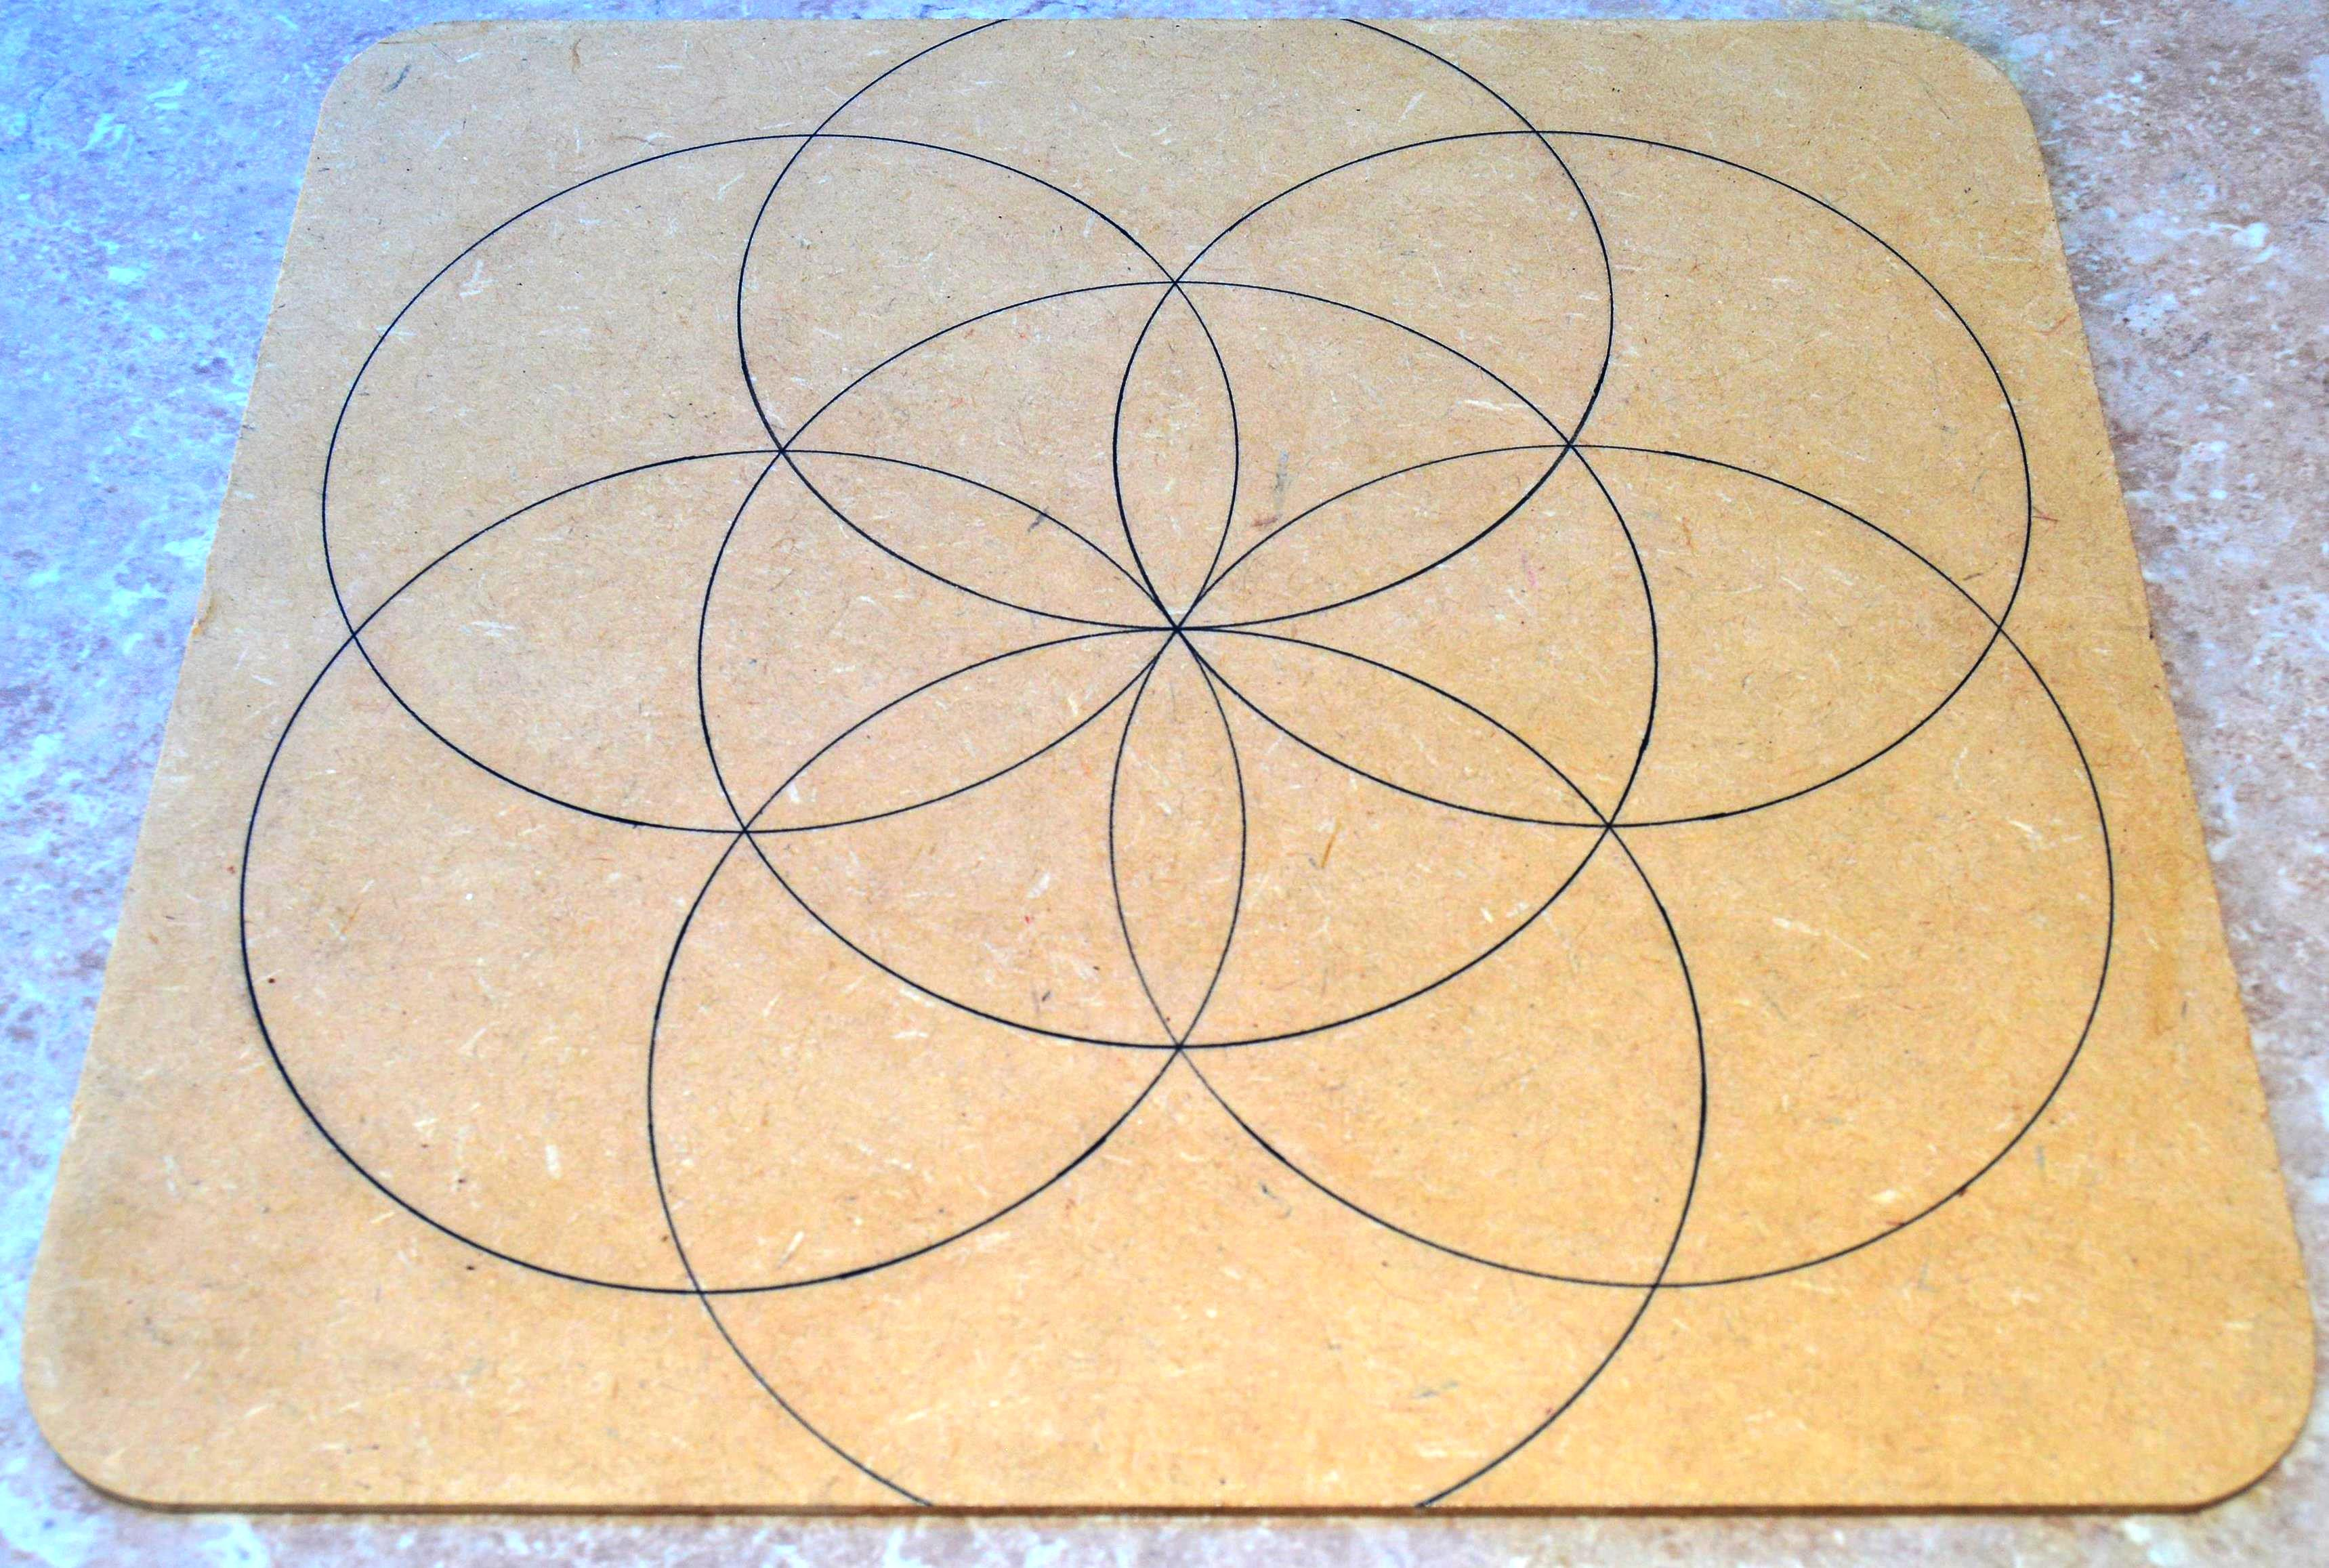 All Natural Spirit Hand Inked Crystal Grid Seed of Life